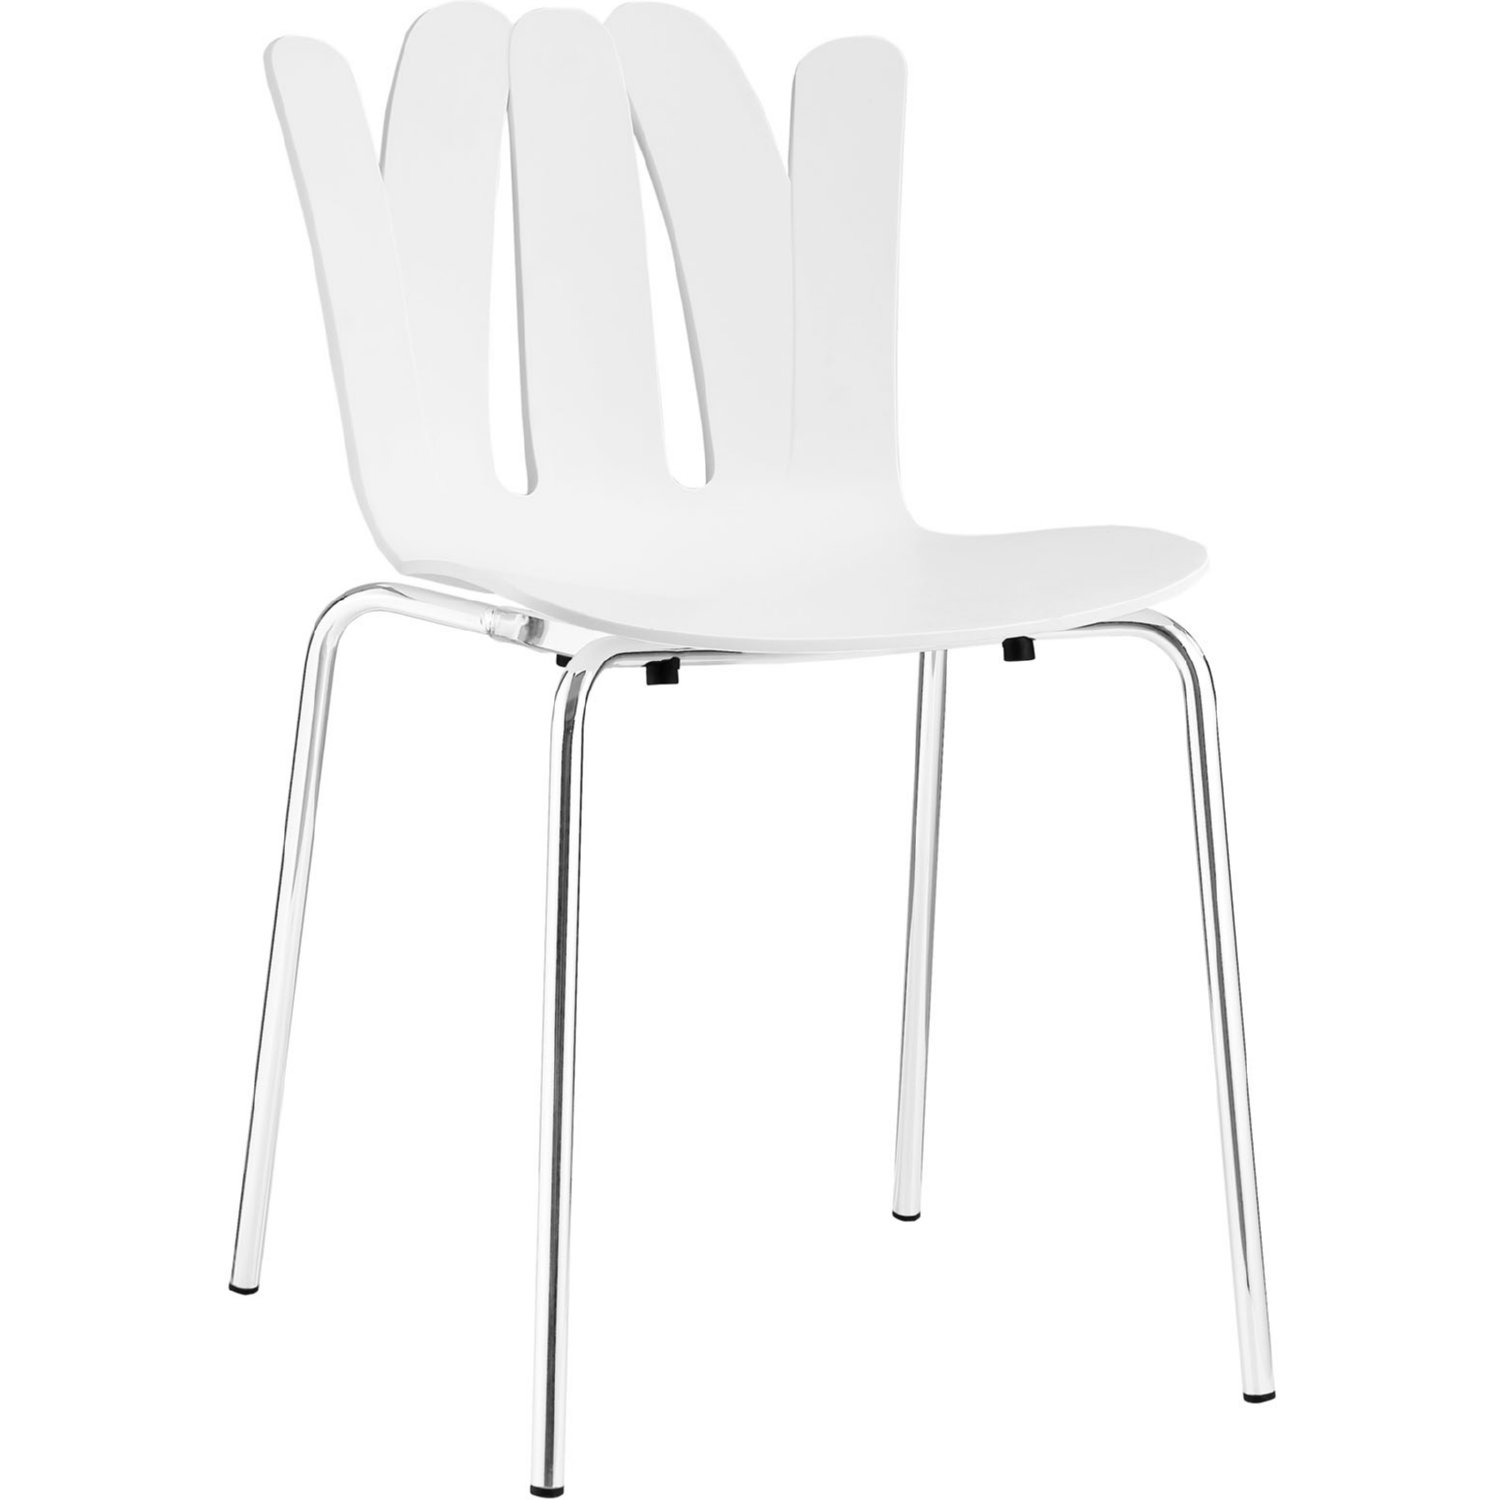 Fine Flare Dining Chair In White Molded Seat Open Pattern Back On Chrome Legs By Modway Creativecarmelina Interior Chair Design Creativecarmelinacom